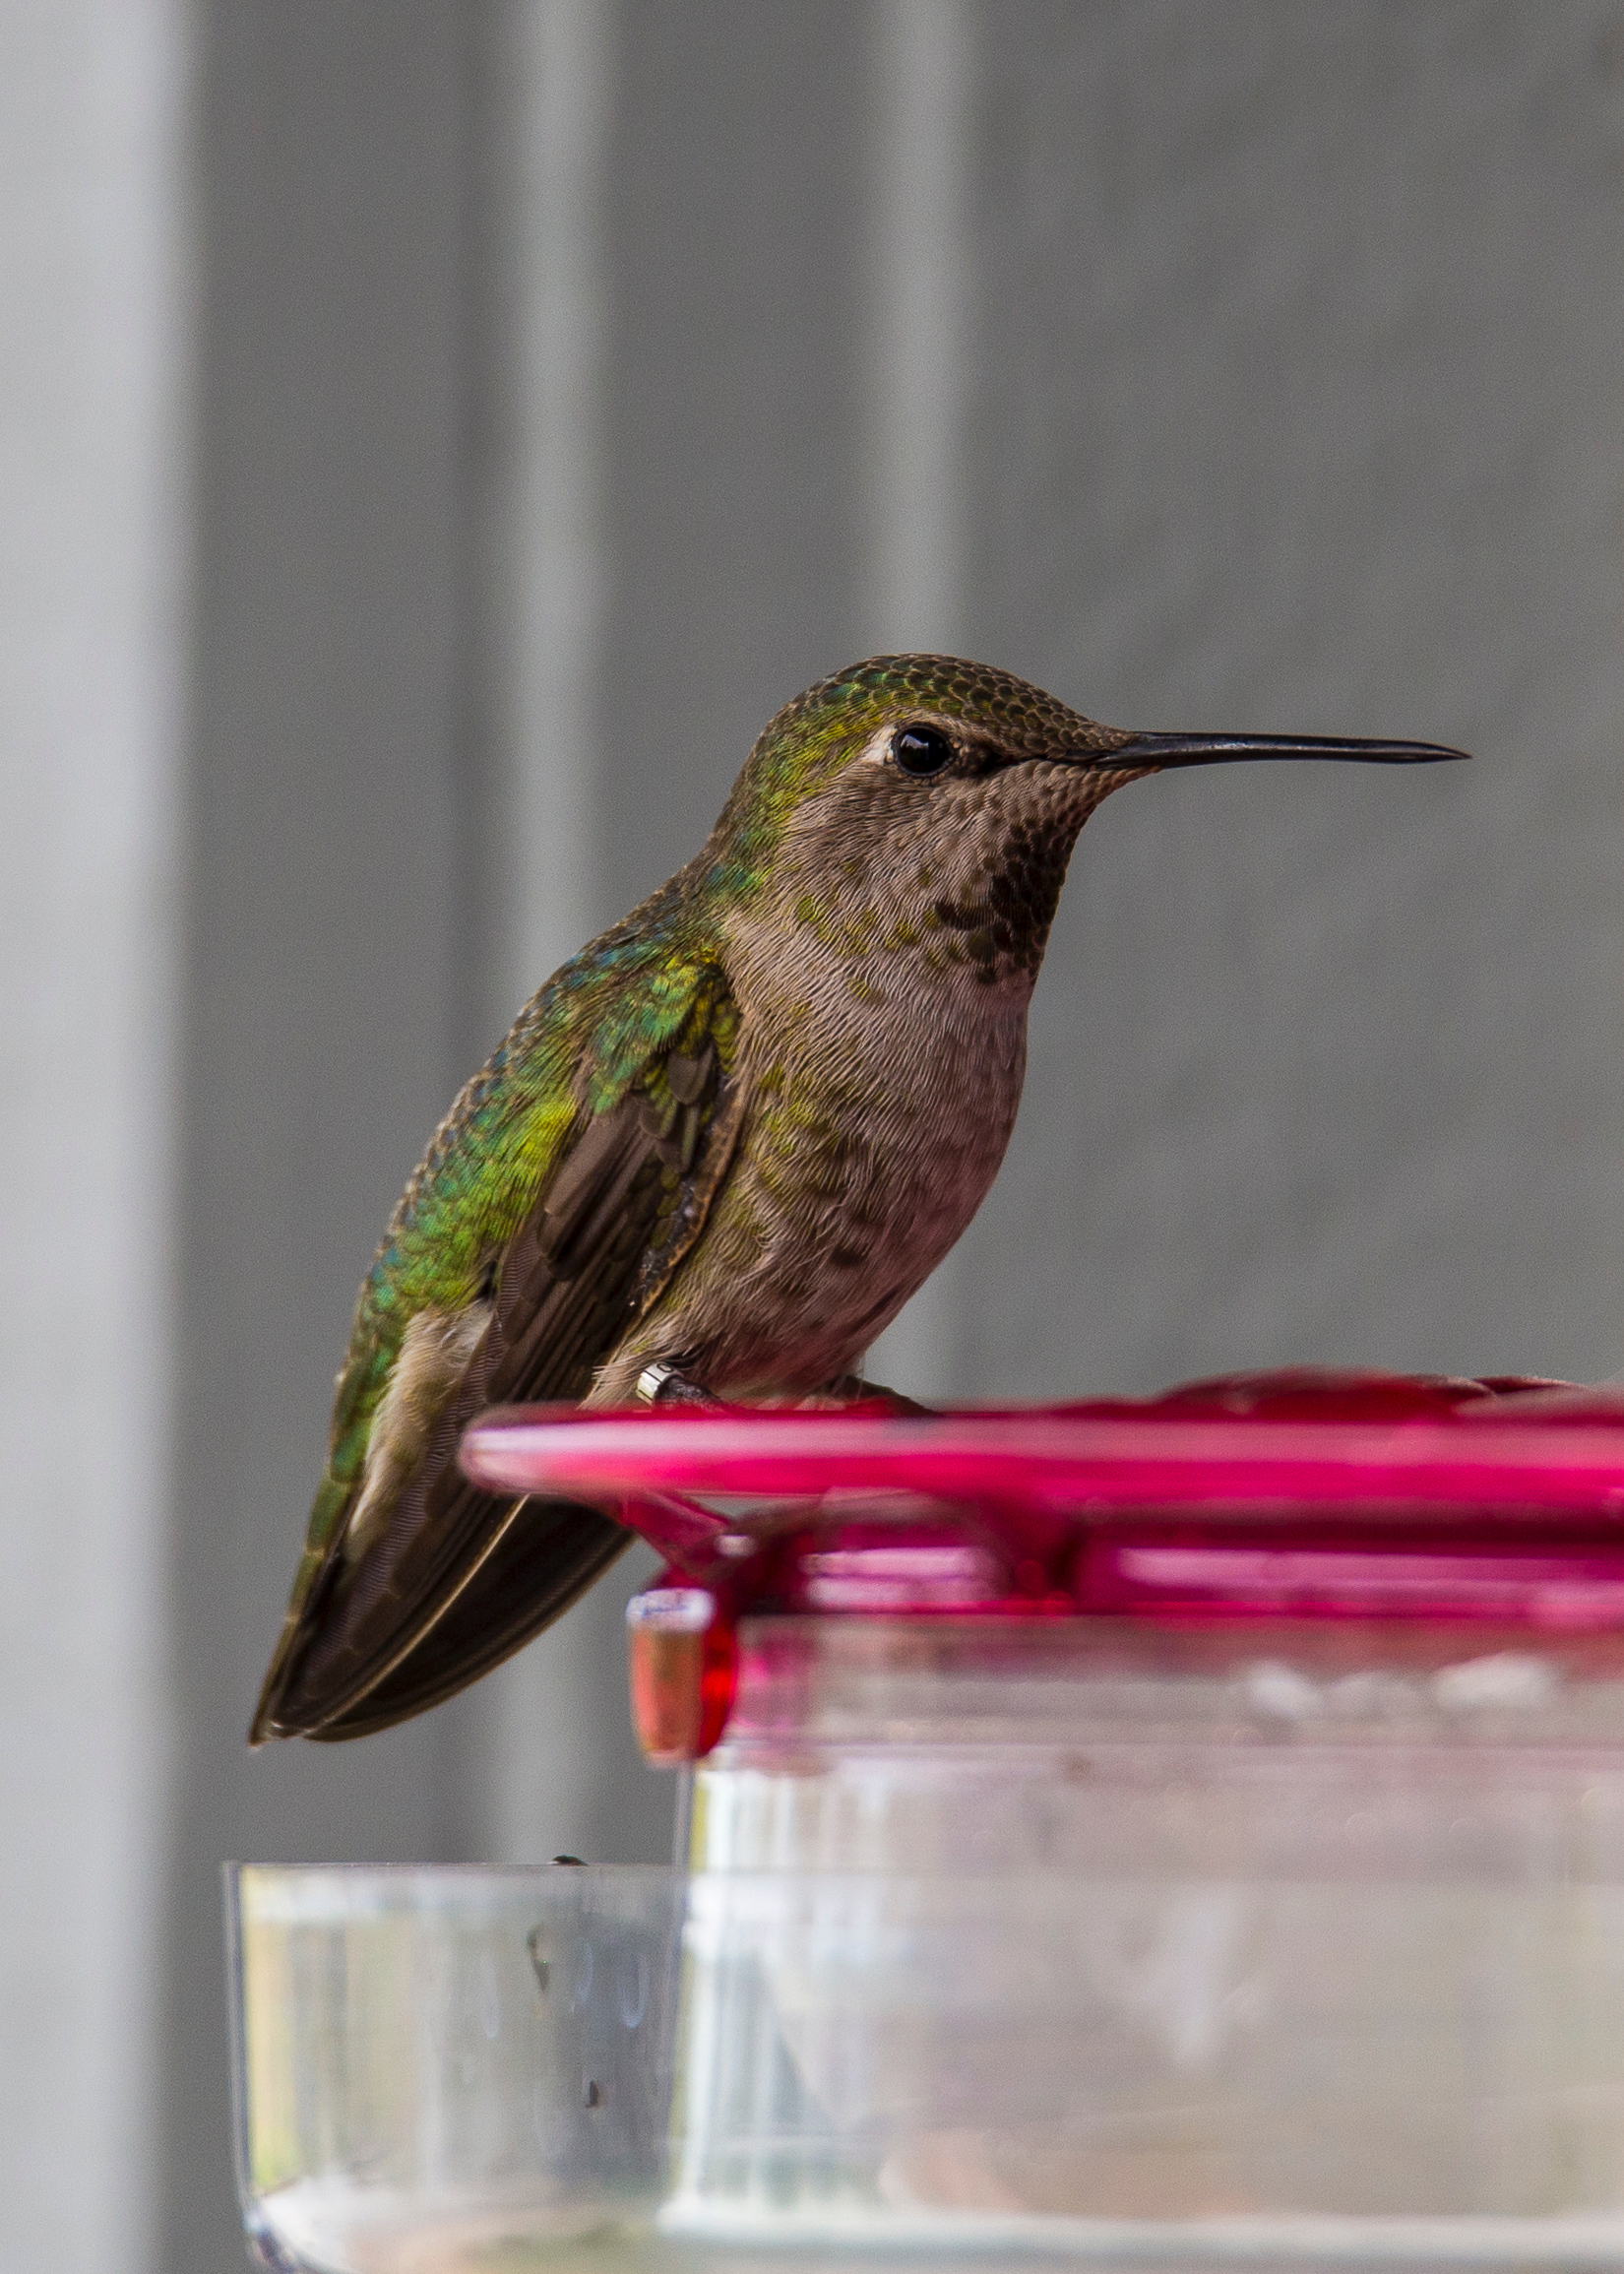 An Anna's hummingbird at the feeder near the entrance.We saw both types of hummingbirds that we get regularly over the course of our visit.